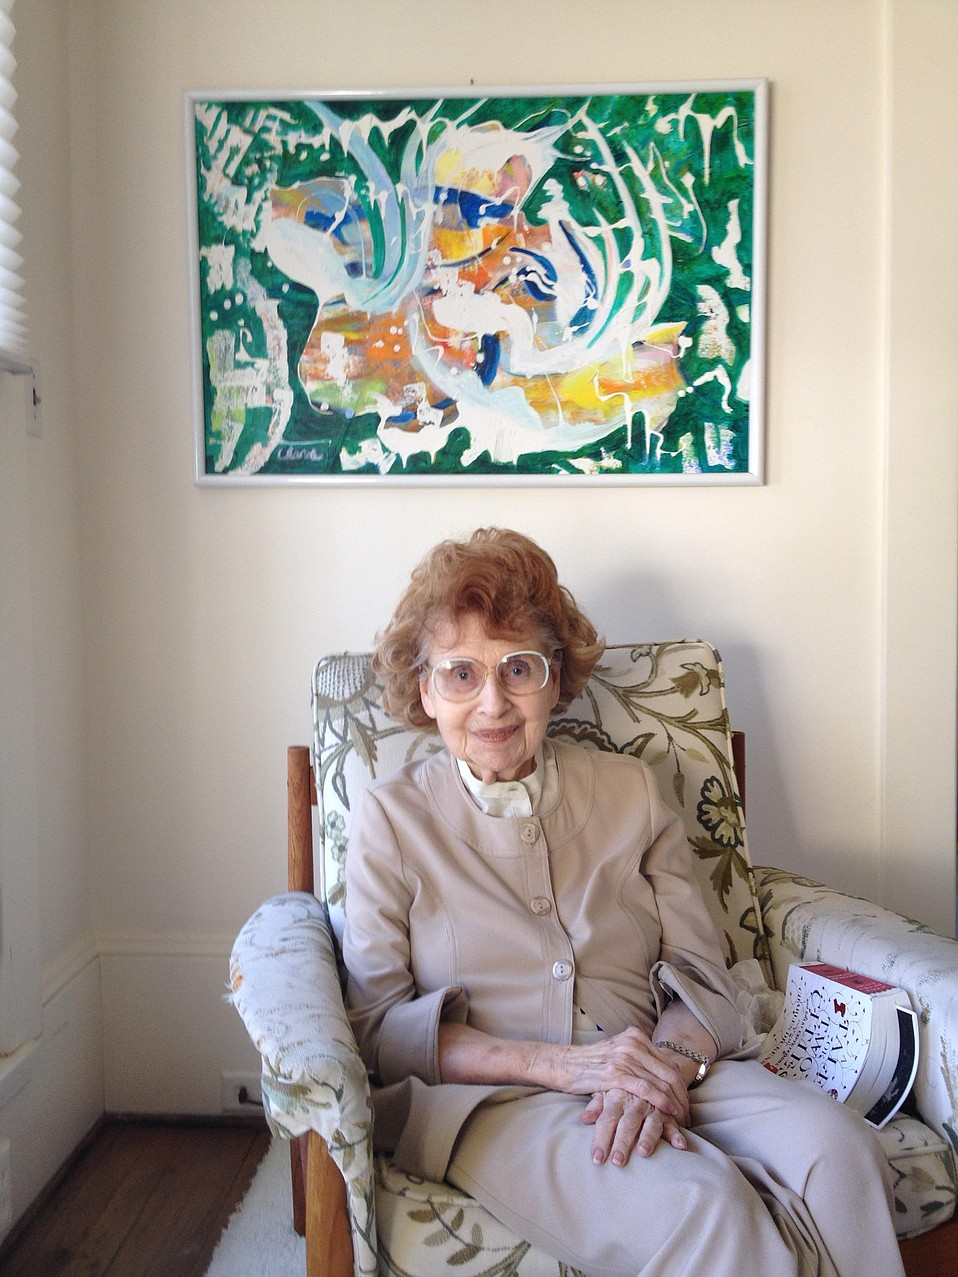 A longtime marriage and family therapist, Evelyn Gerlach was also a self-taught artist.